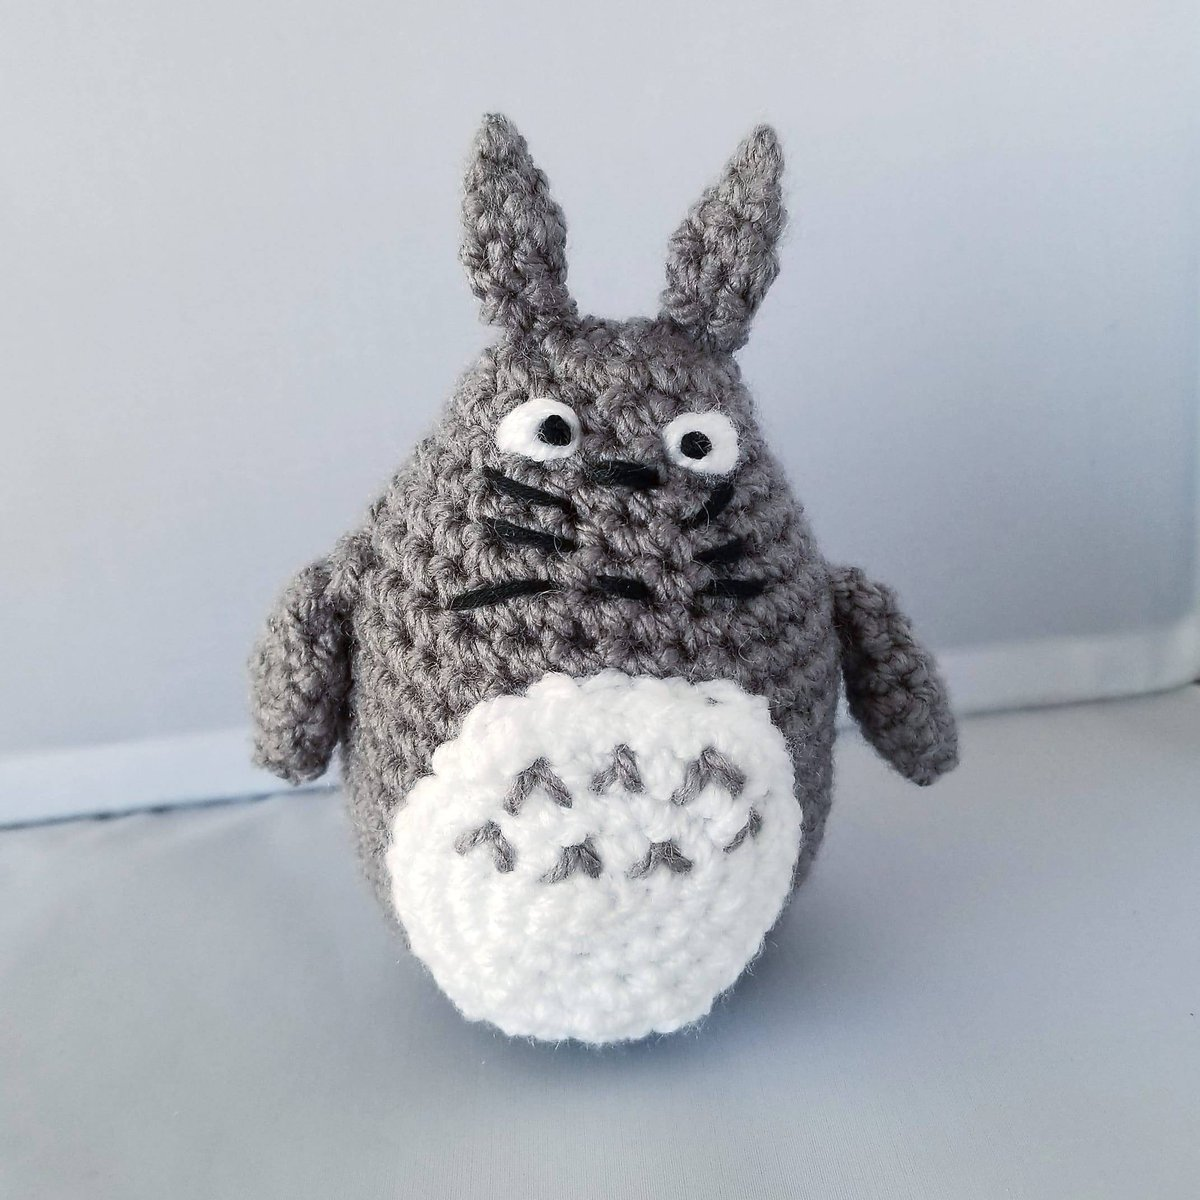 Totoro and Soot Sprites Crochet Pattern With Video | 1200x1200